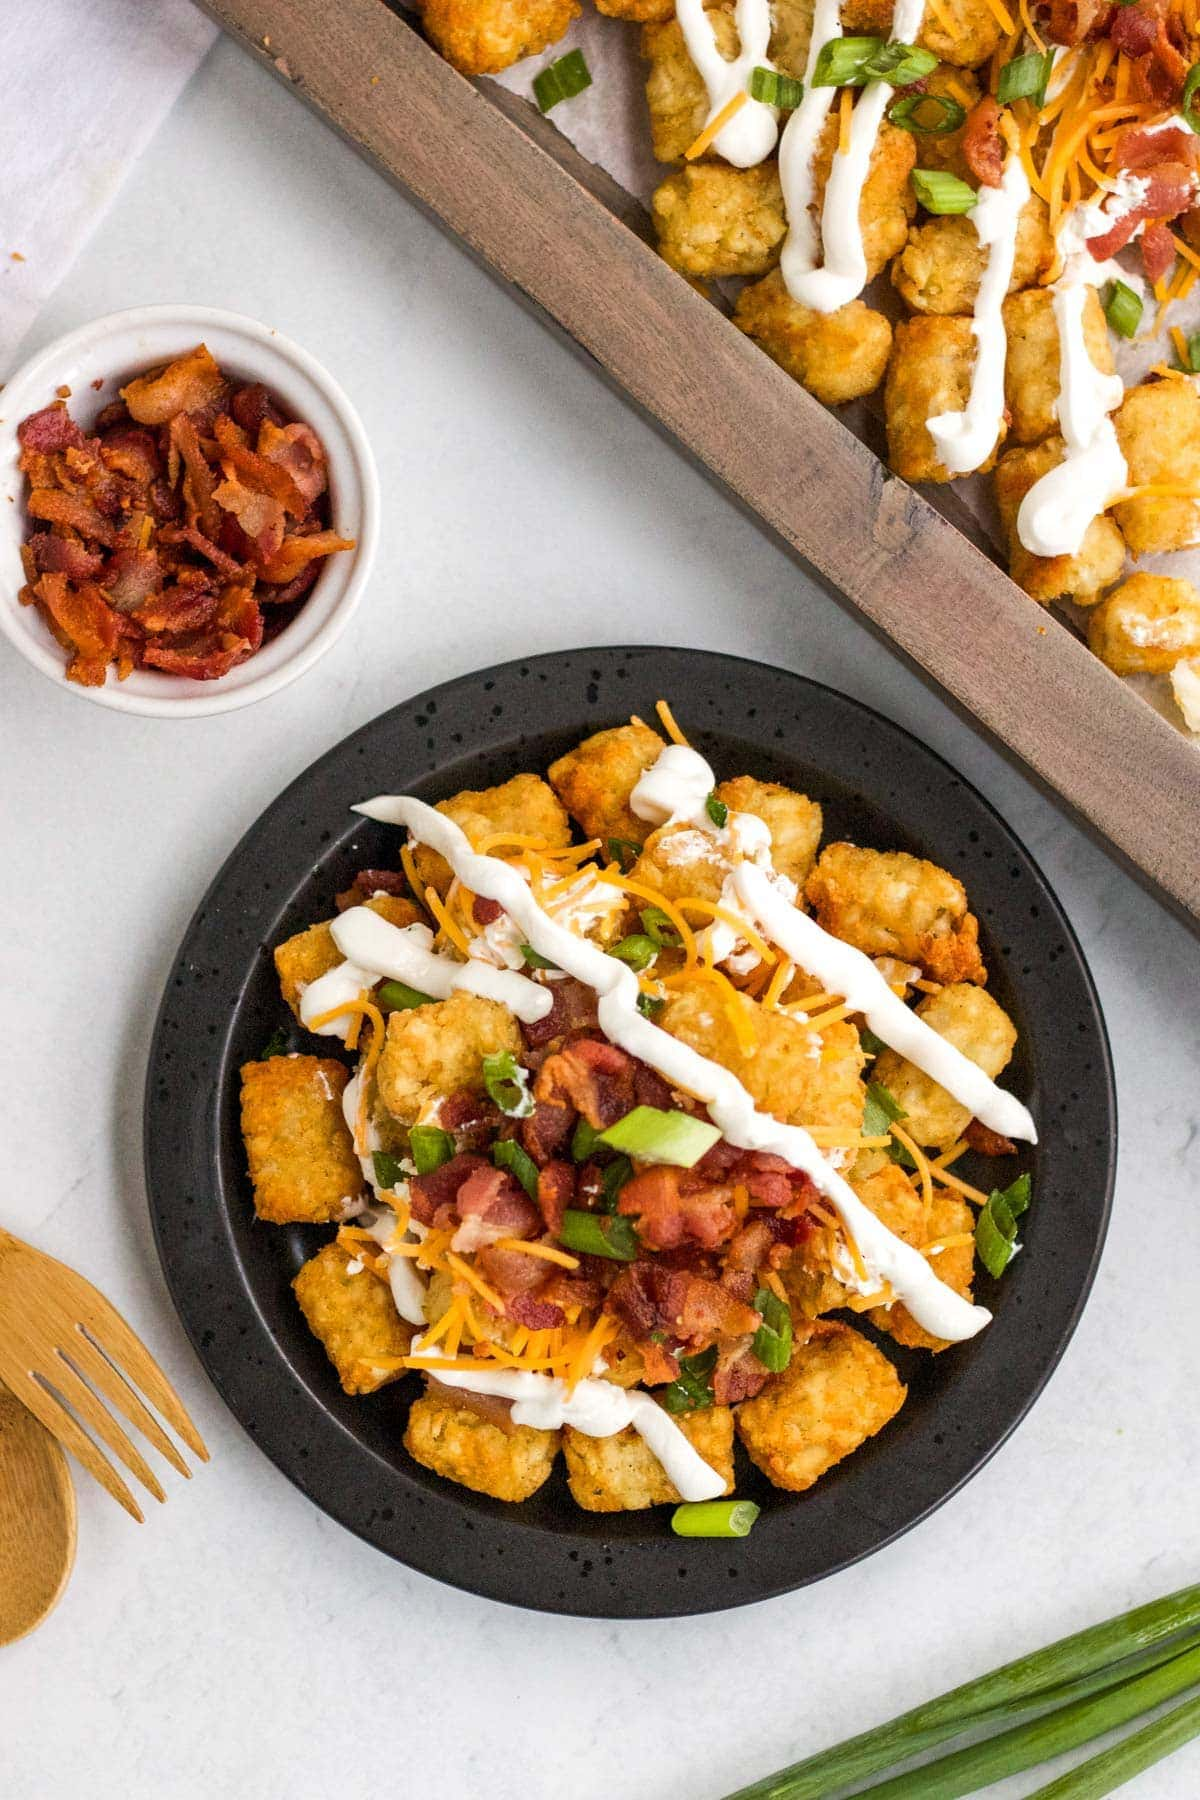 tater tot nachos with sour cream, bacon, green onions and cheese, black plate, wood tray